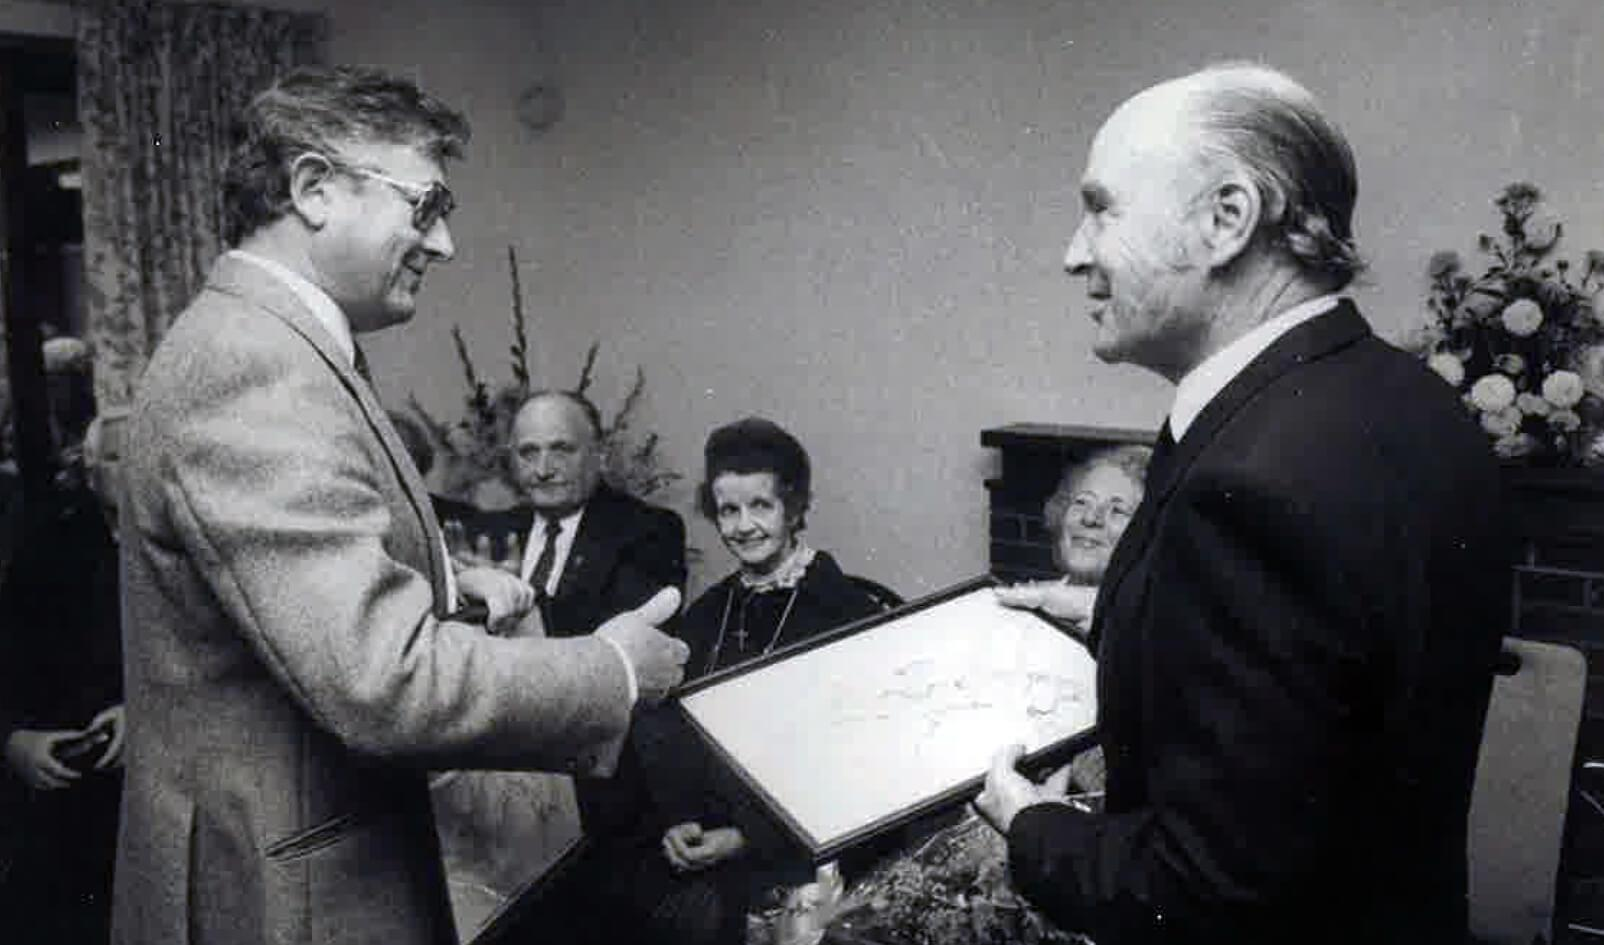 CJ-Ron-Falconer-Presentation-to-President-Patrick-Hillery-Sept.-88-at-the-Opening-of-Sue-Ryder-Head-Quarters-Ballyroan.jpg#asset:2368